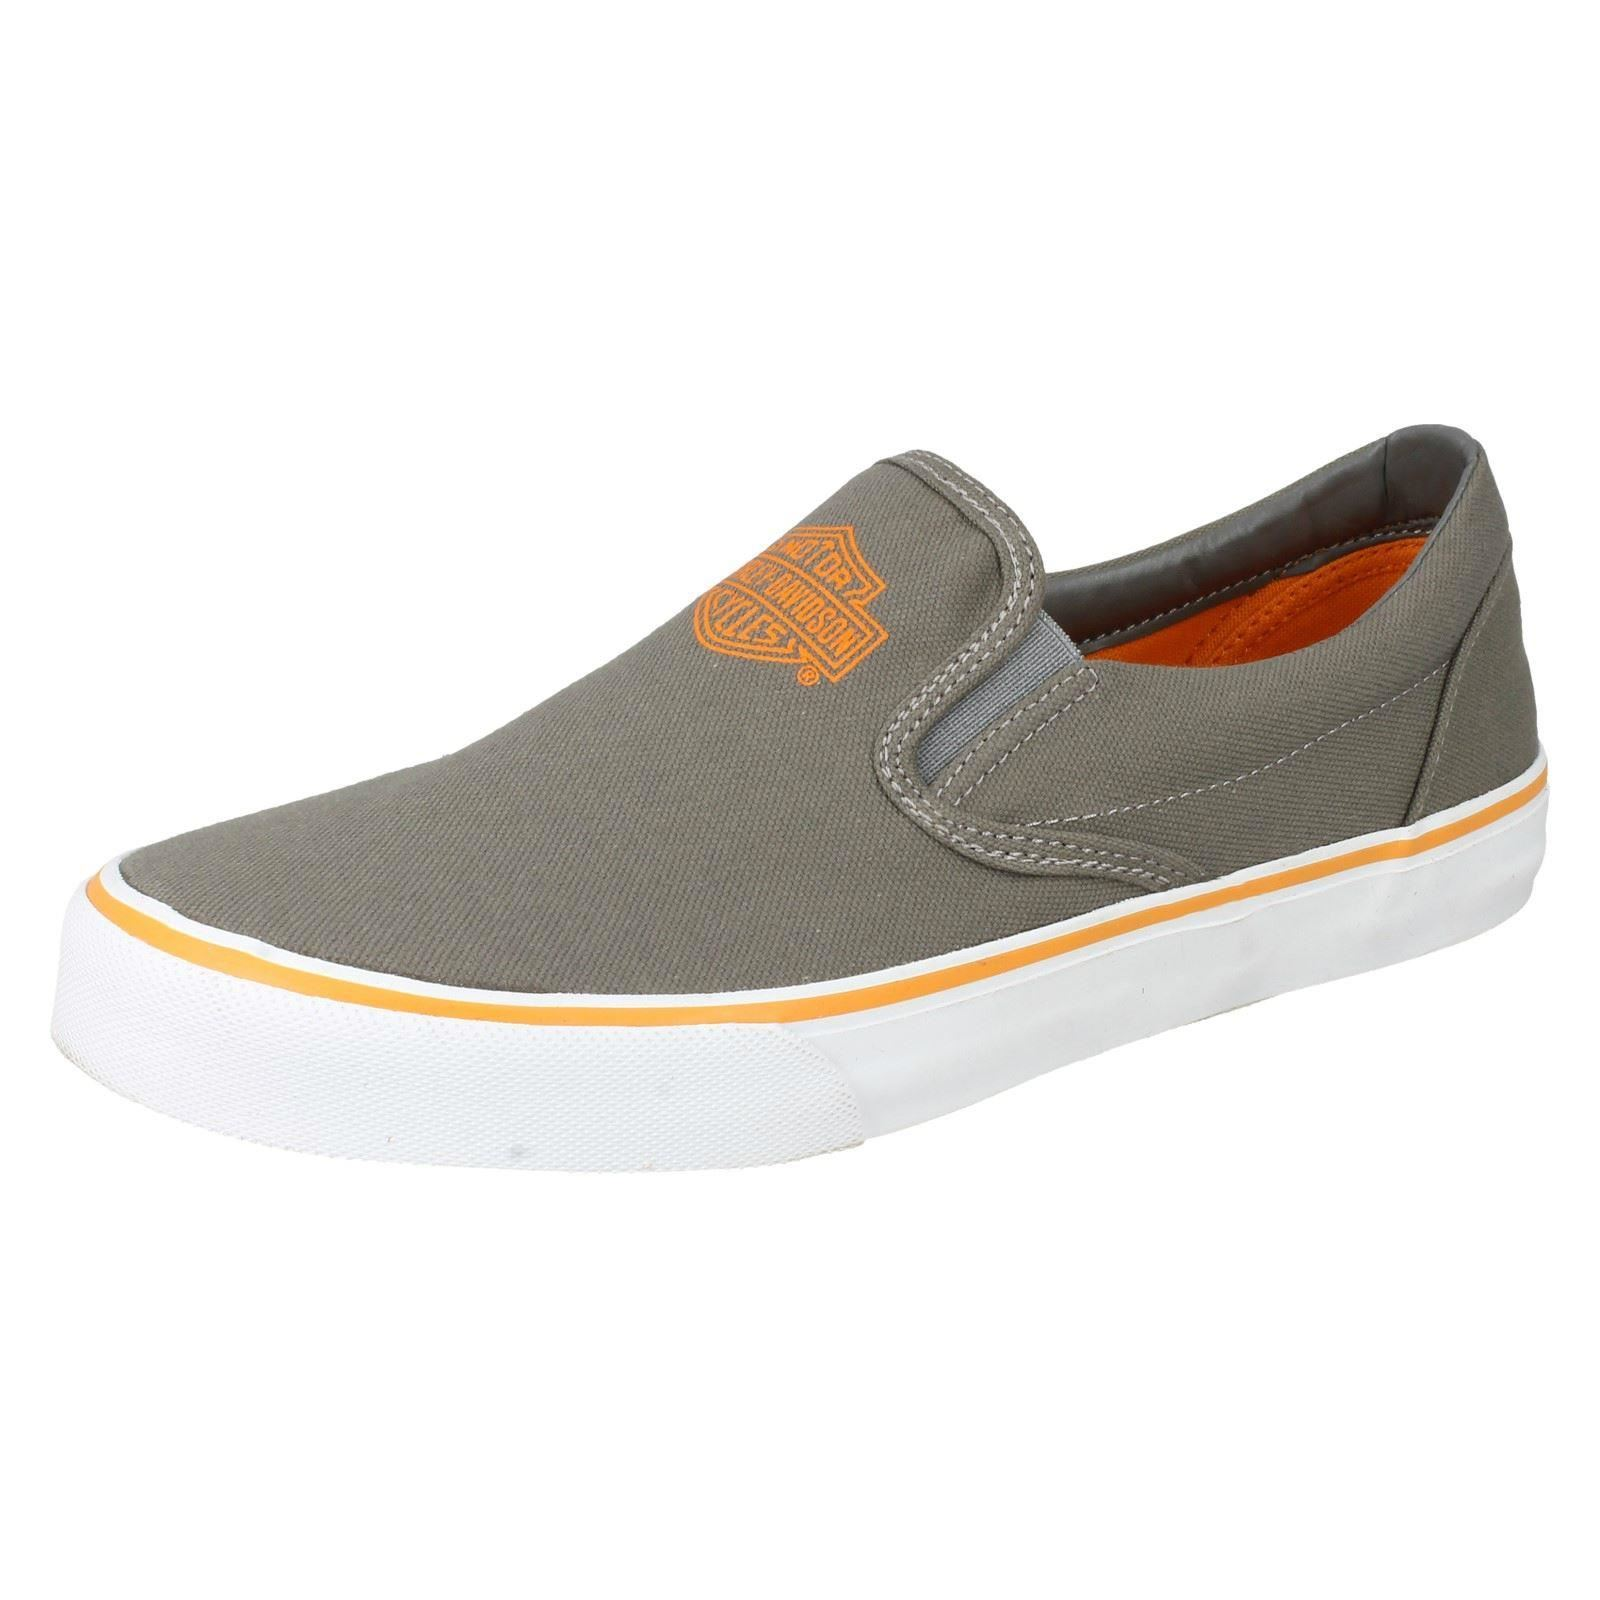 12edf95850228b Harley Davidson Mens Casual Slip on PUMPS Marchmont D93320 Grey UK ...